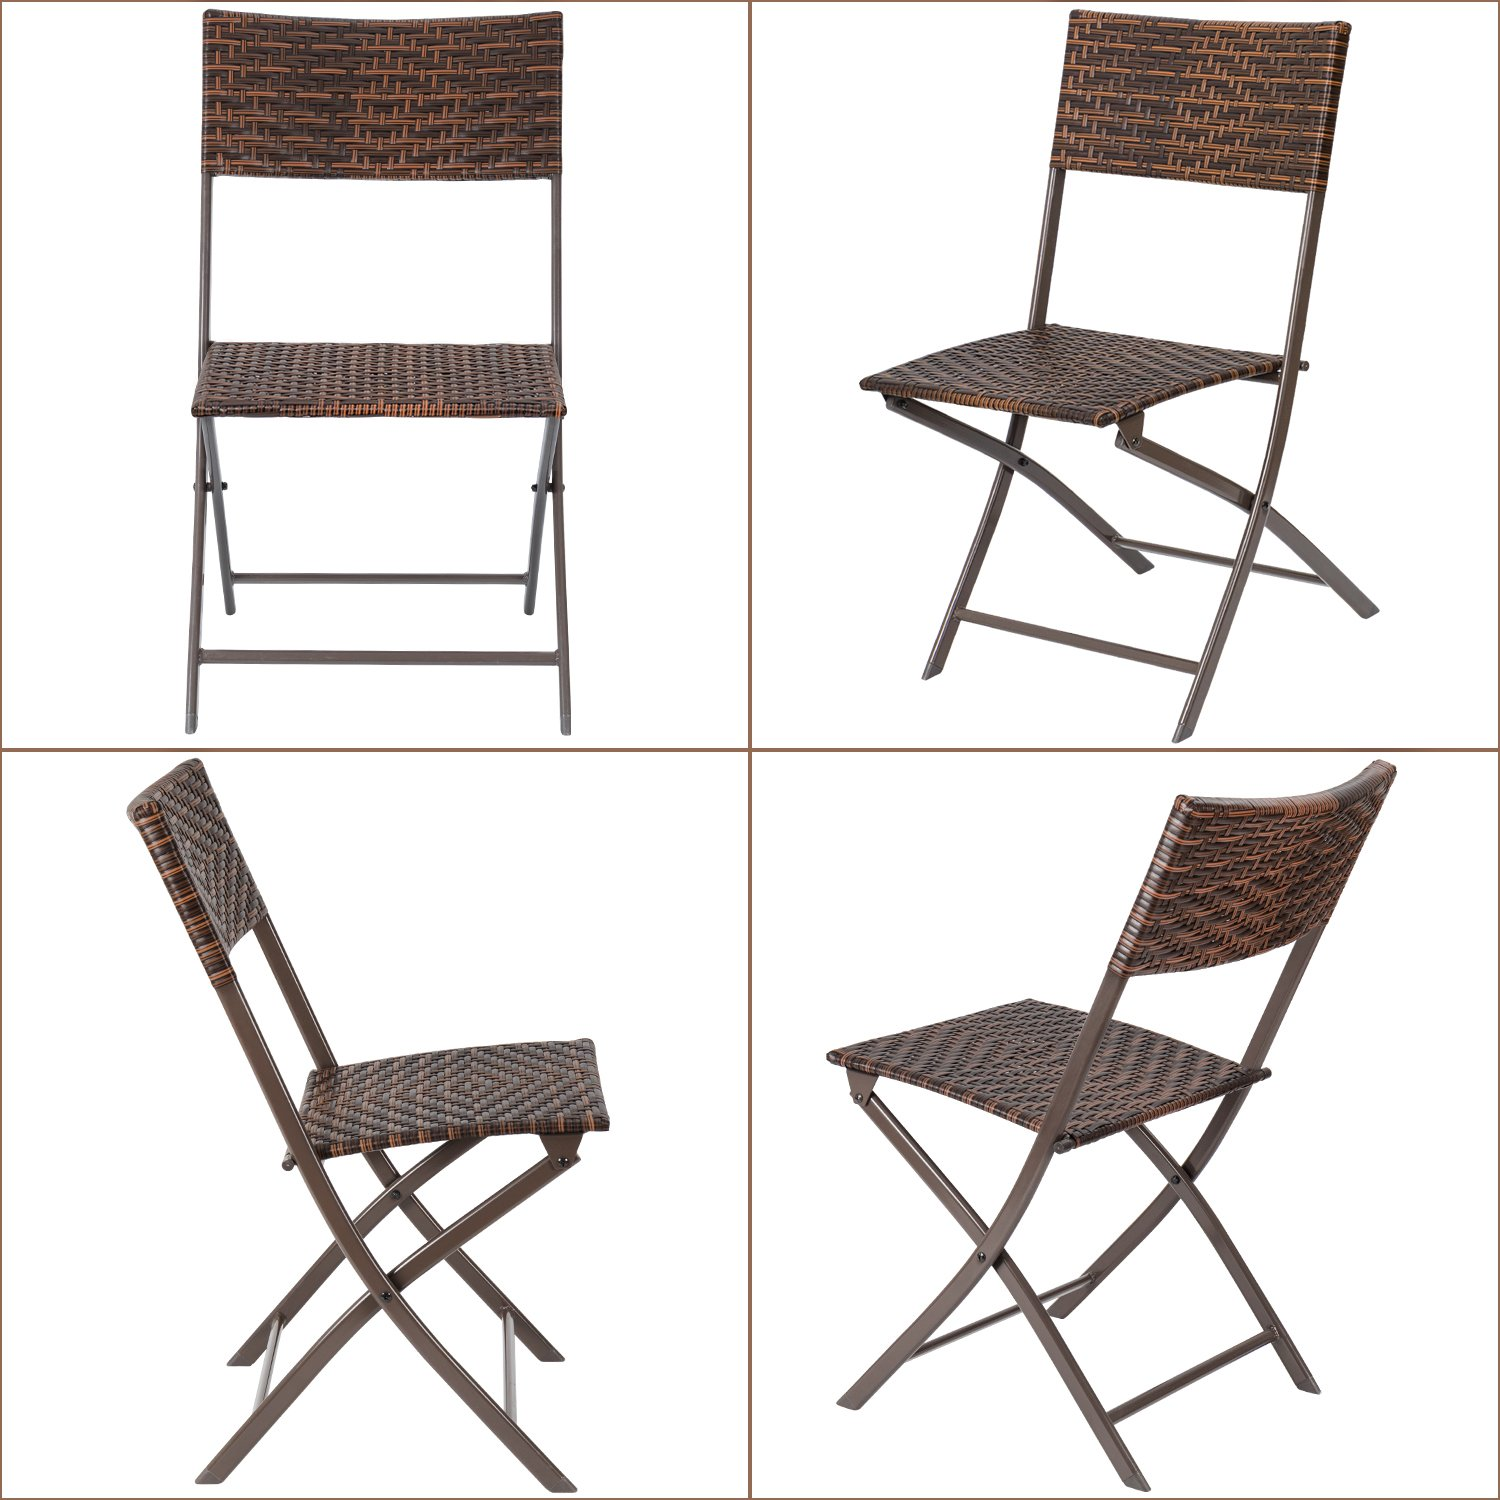 Flamaker Folding Patio Chairs PE Wicker Rattan Chair 4 Pieces Patio Furniture Set by Flamaker (Image #2)